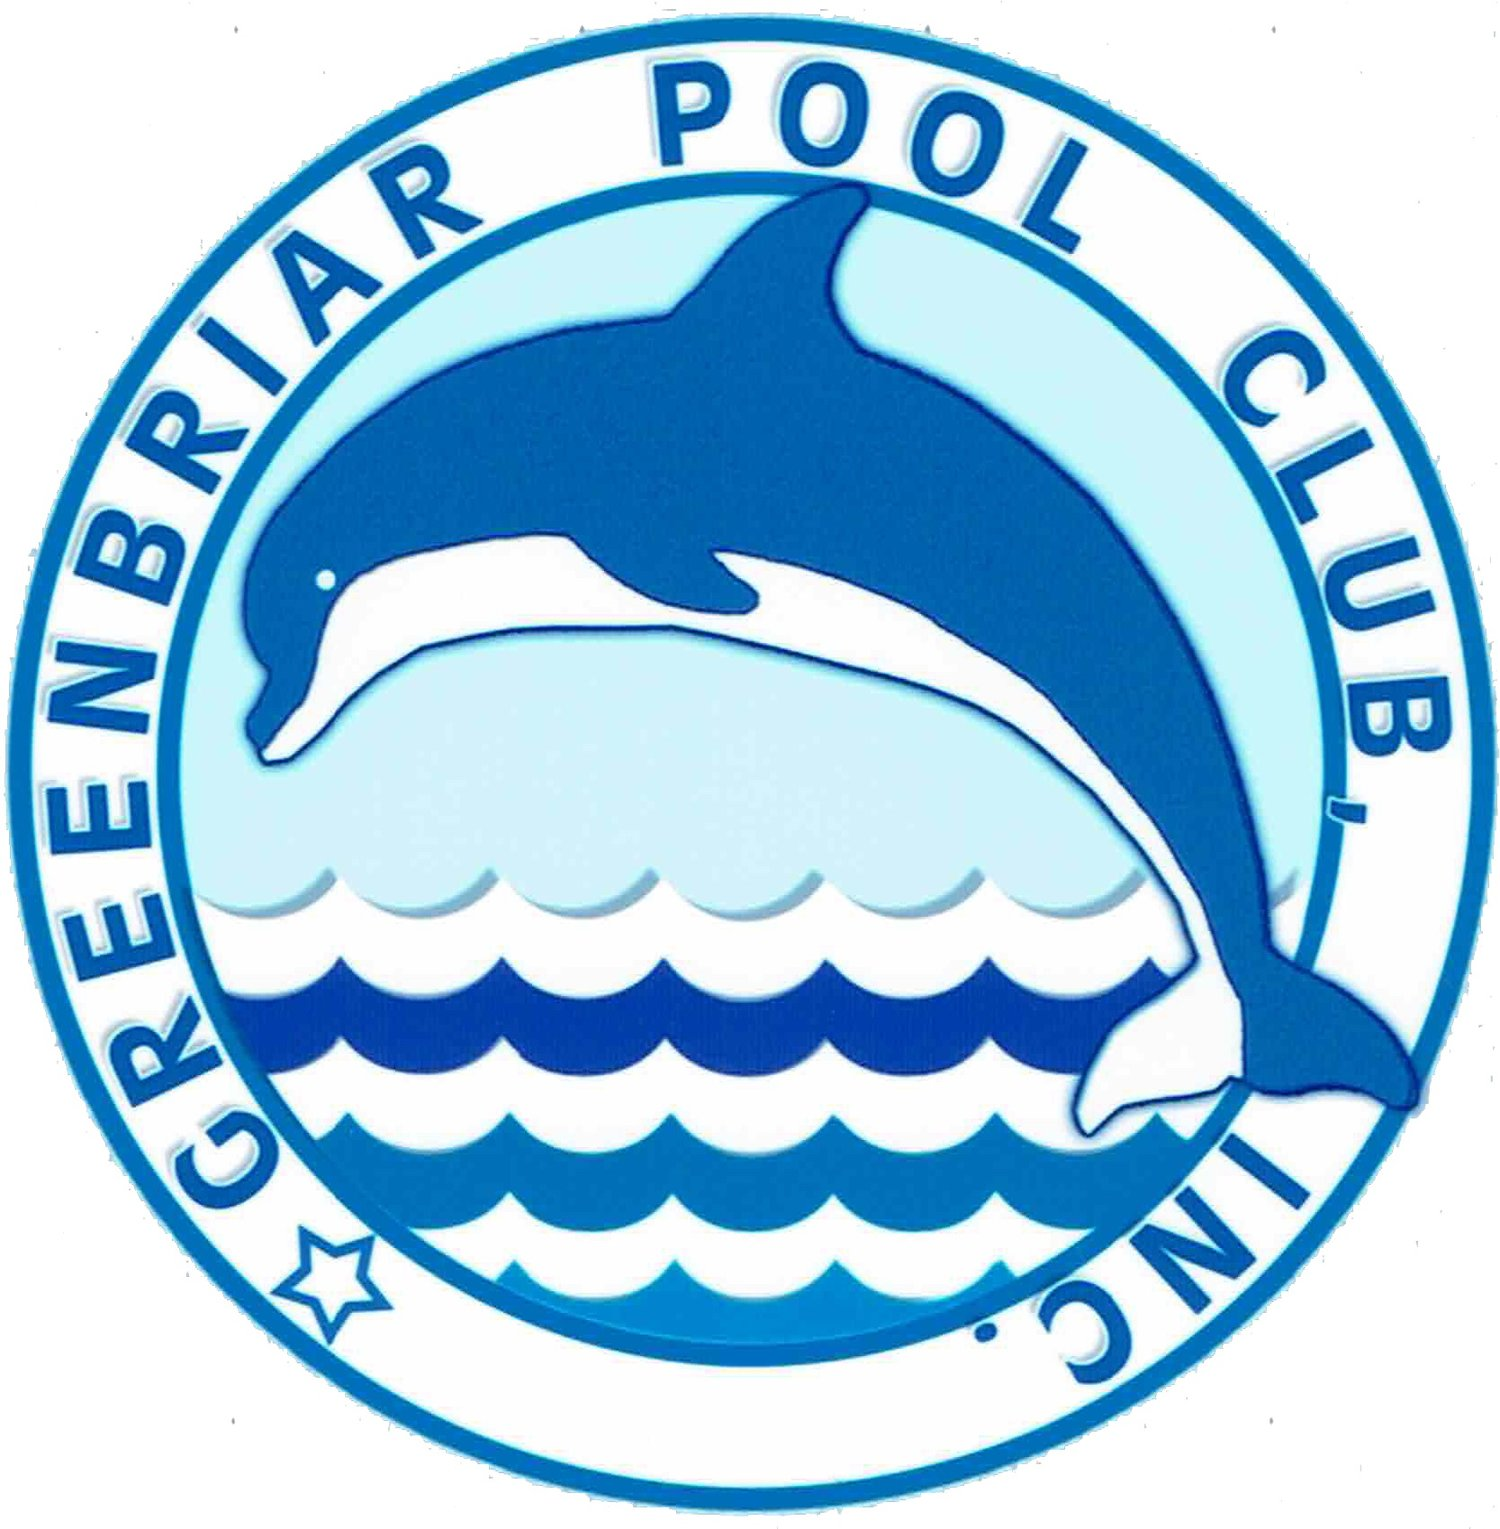 Greenbriar Pool Club